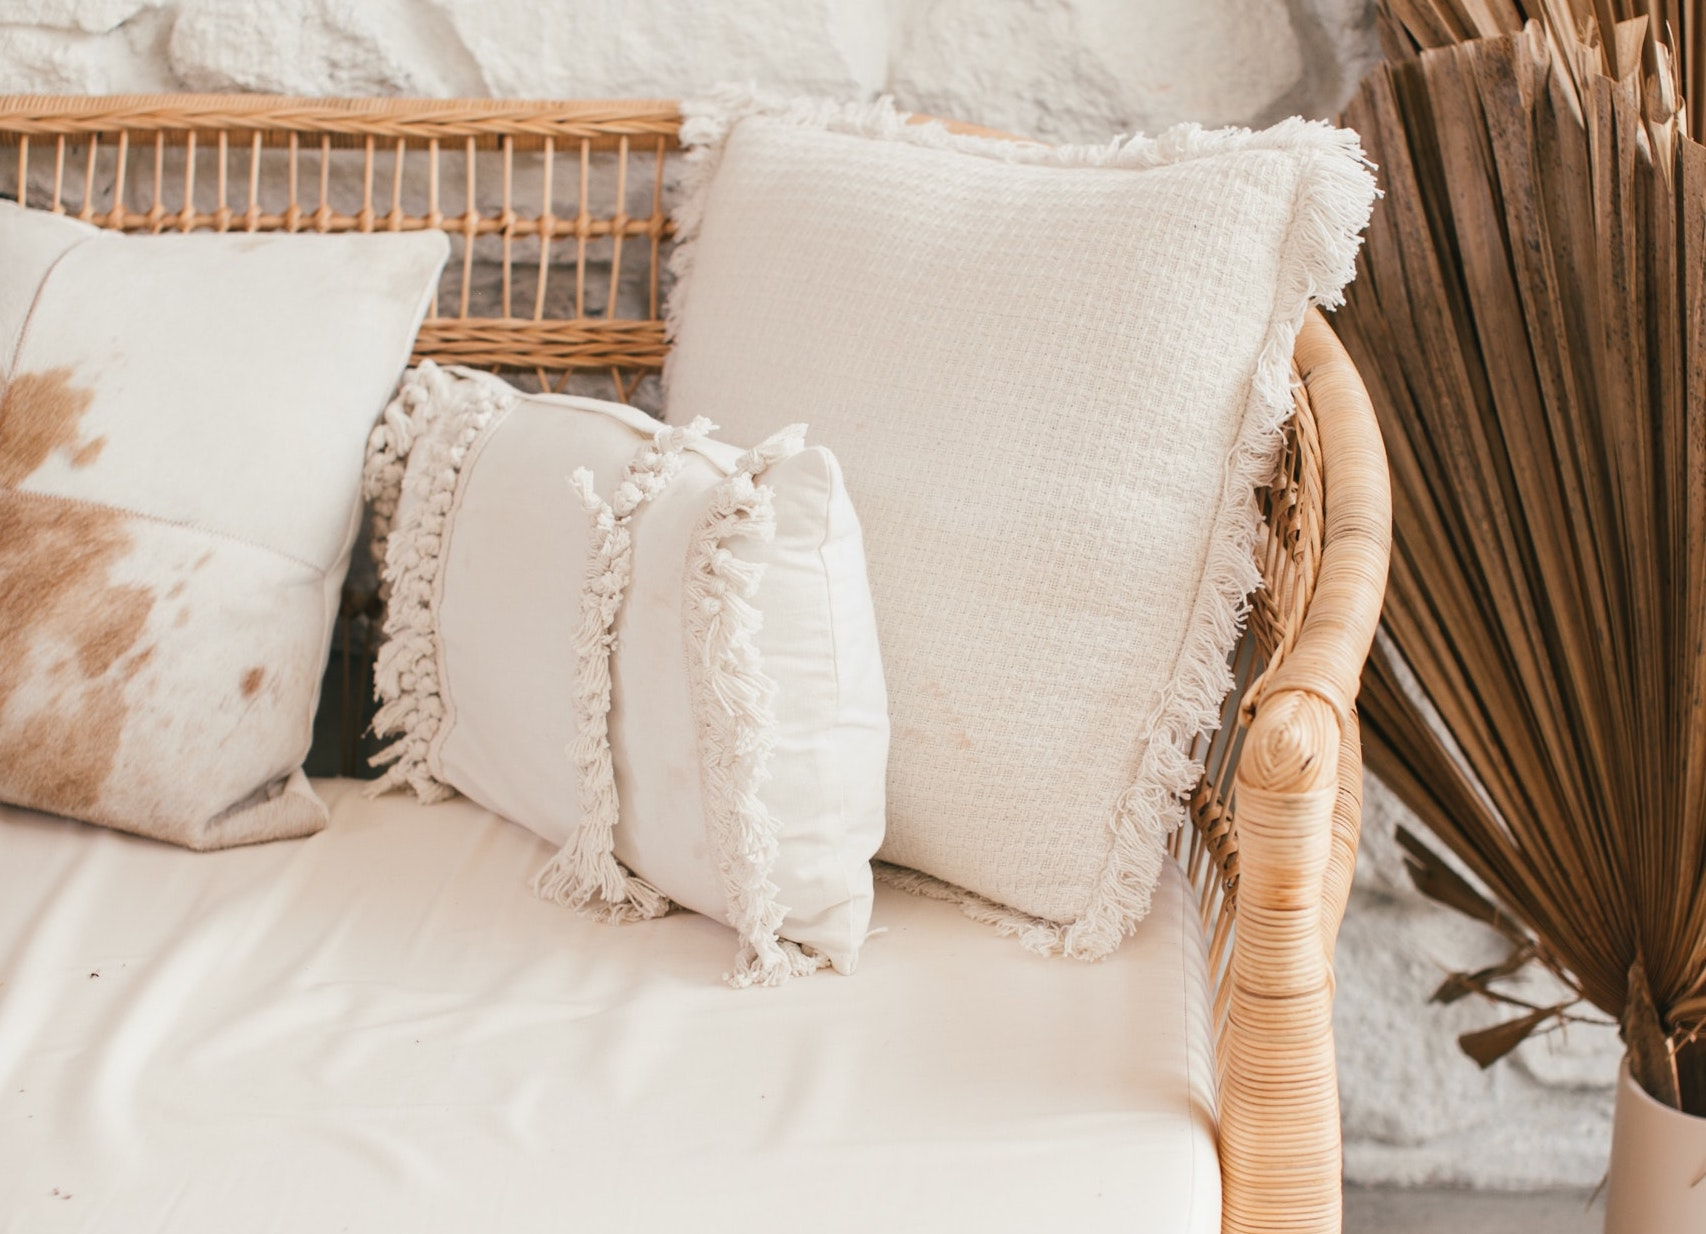 beautiful textiles pillows blankets couch luxury home